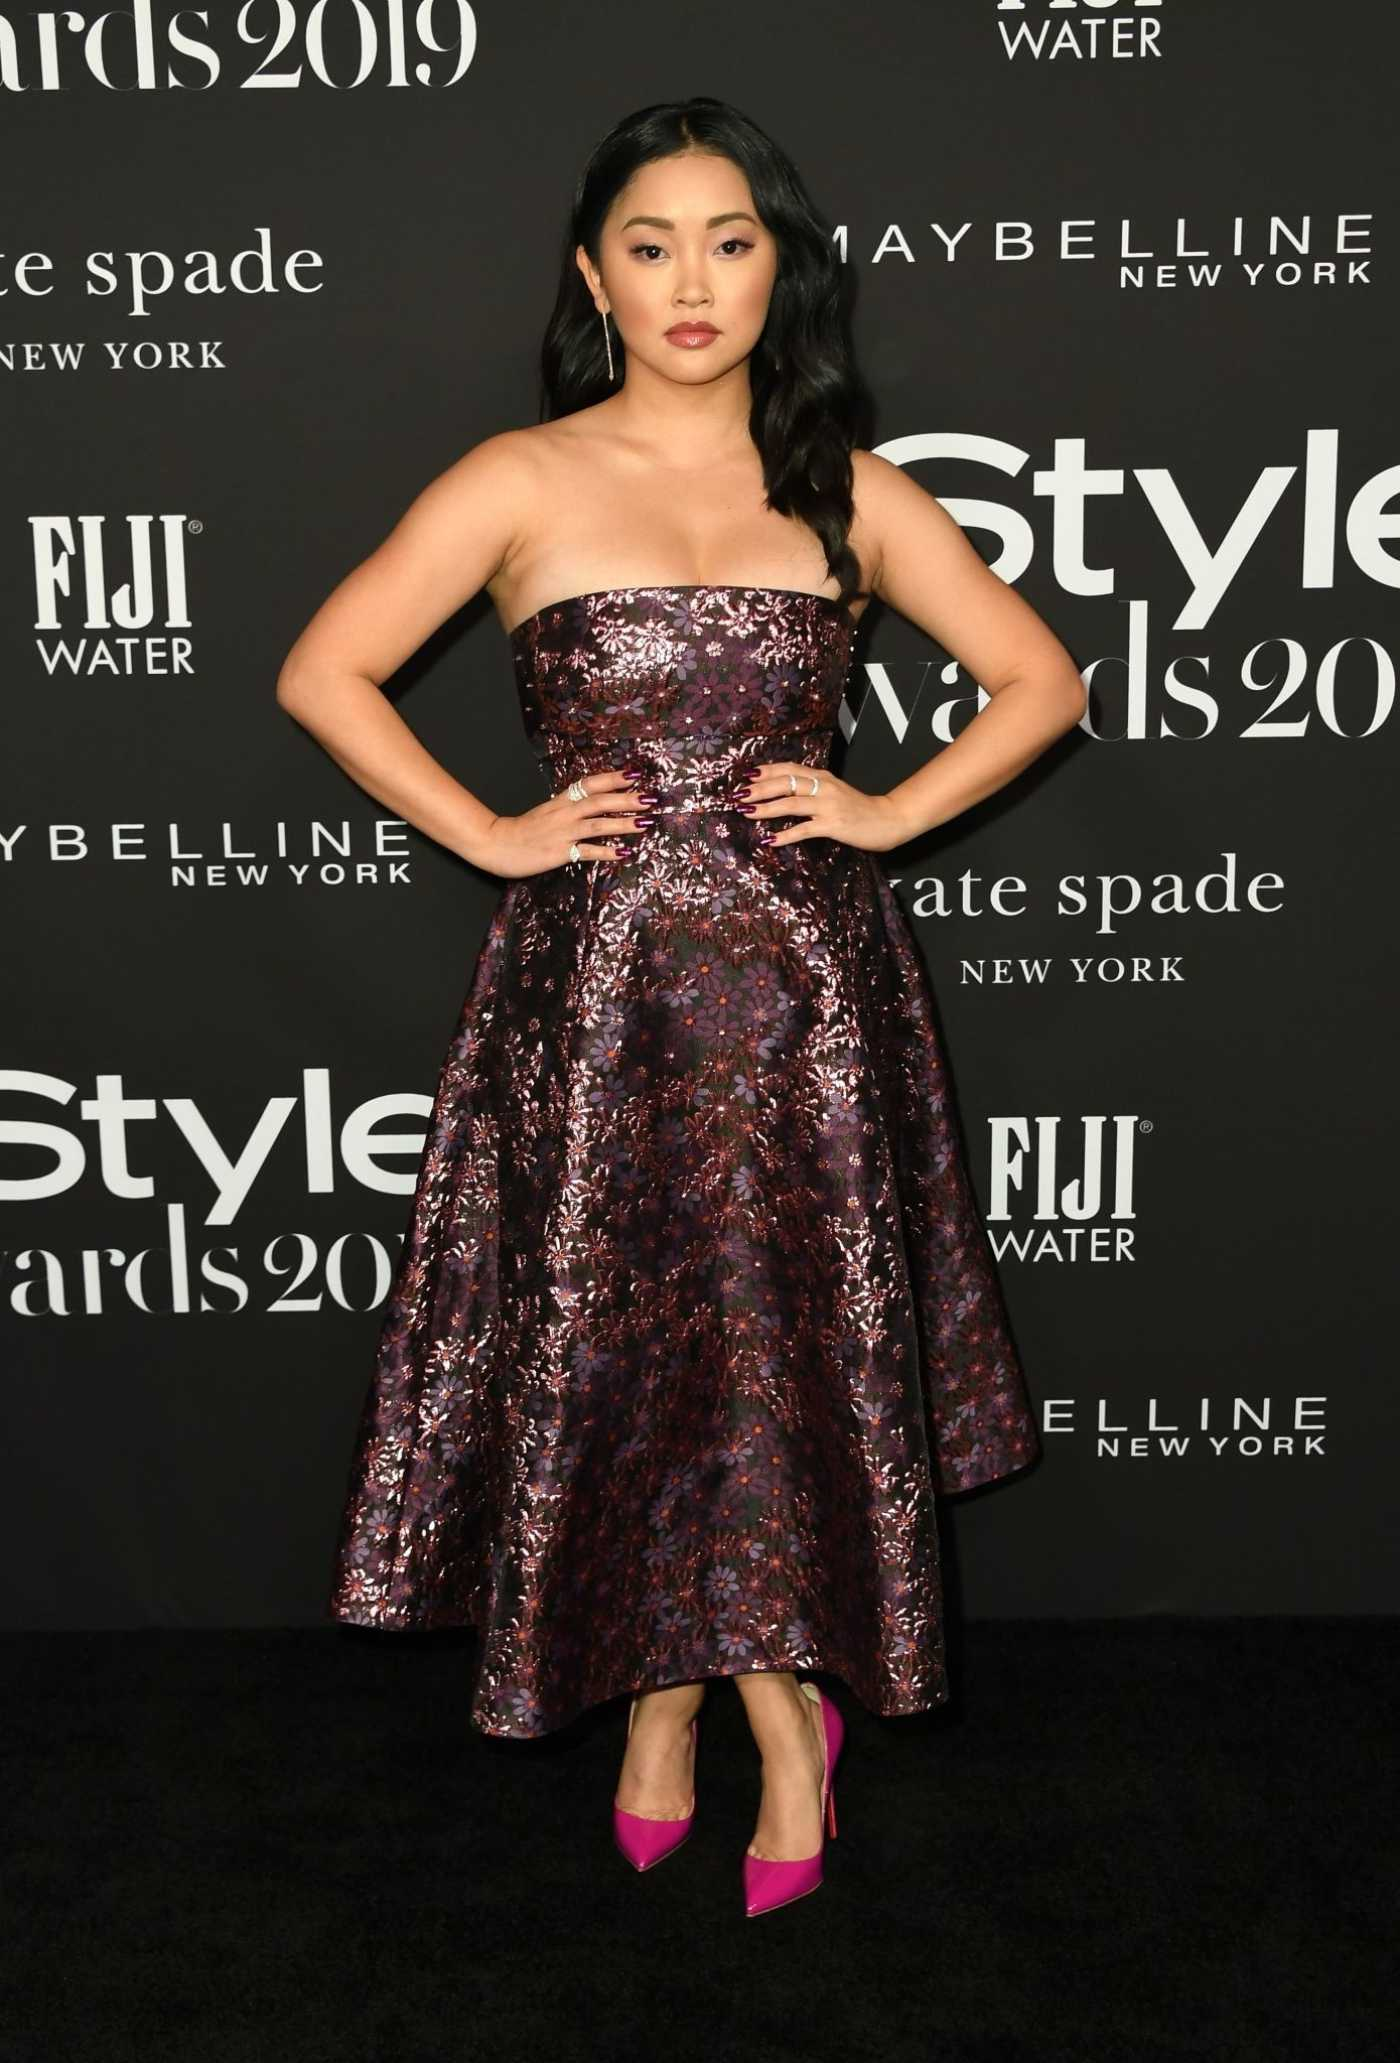 Lana Condor Attends the 5th Annual InStyle Awards in Los Angeles 10/21/2019